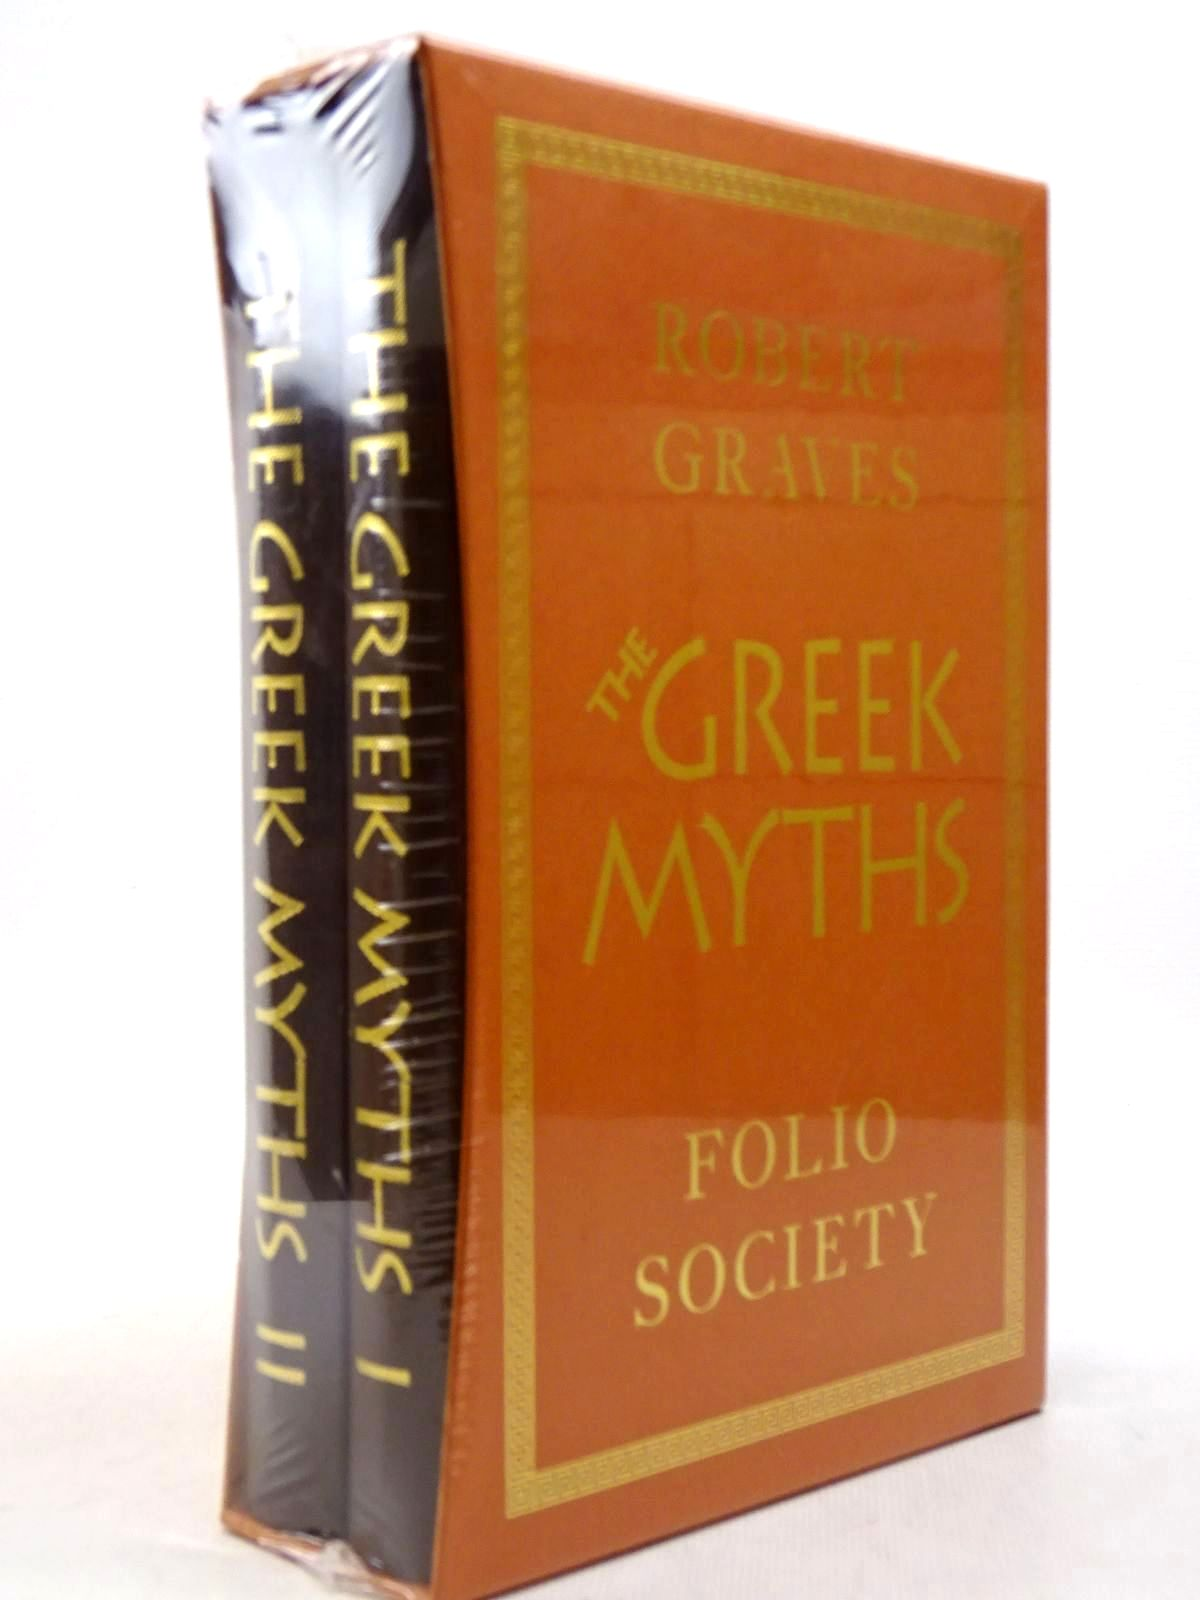 Photo of THE GREEK MYTHS (2 VOLUMES) written by Graves, Robert<br />Mcleish, Kenneth illustrated by Baker, Grahame published by Folio Society (STOCK CODE: 2129350)  for sale by Stella & Rose's Books